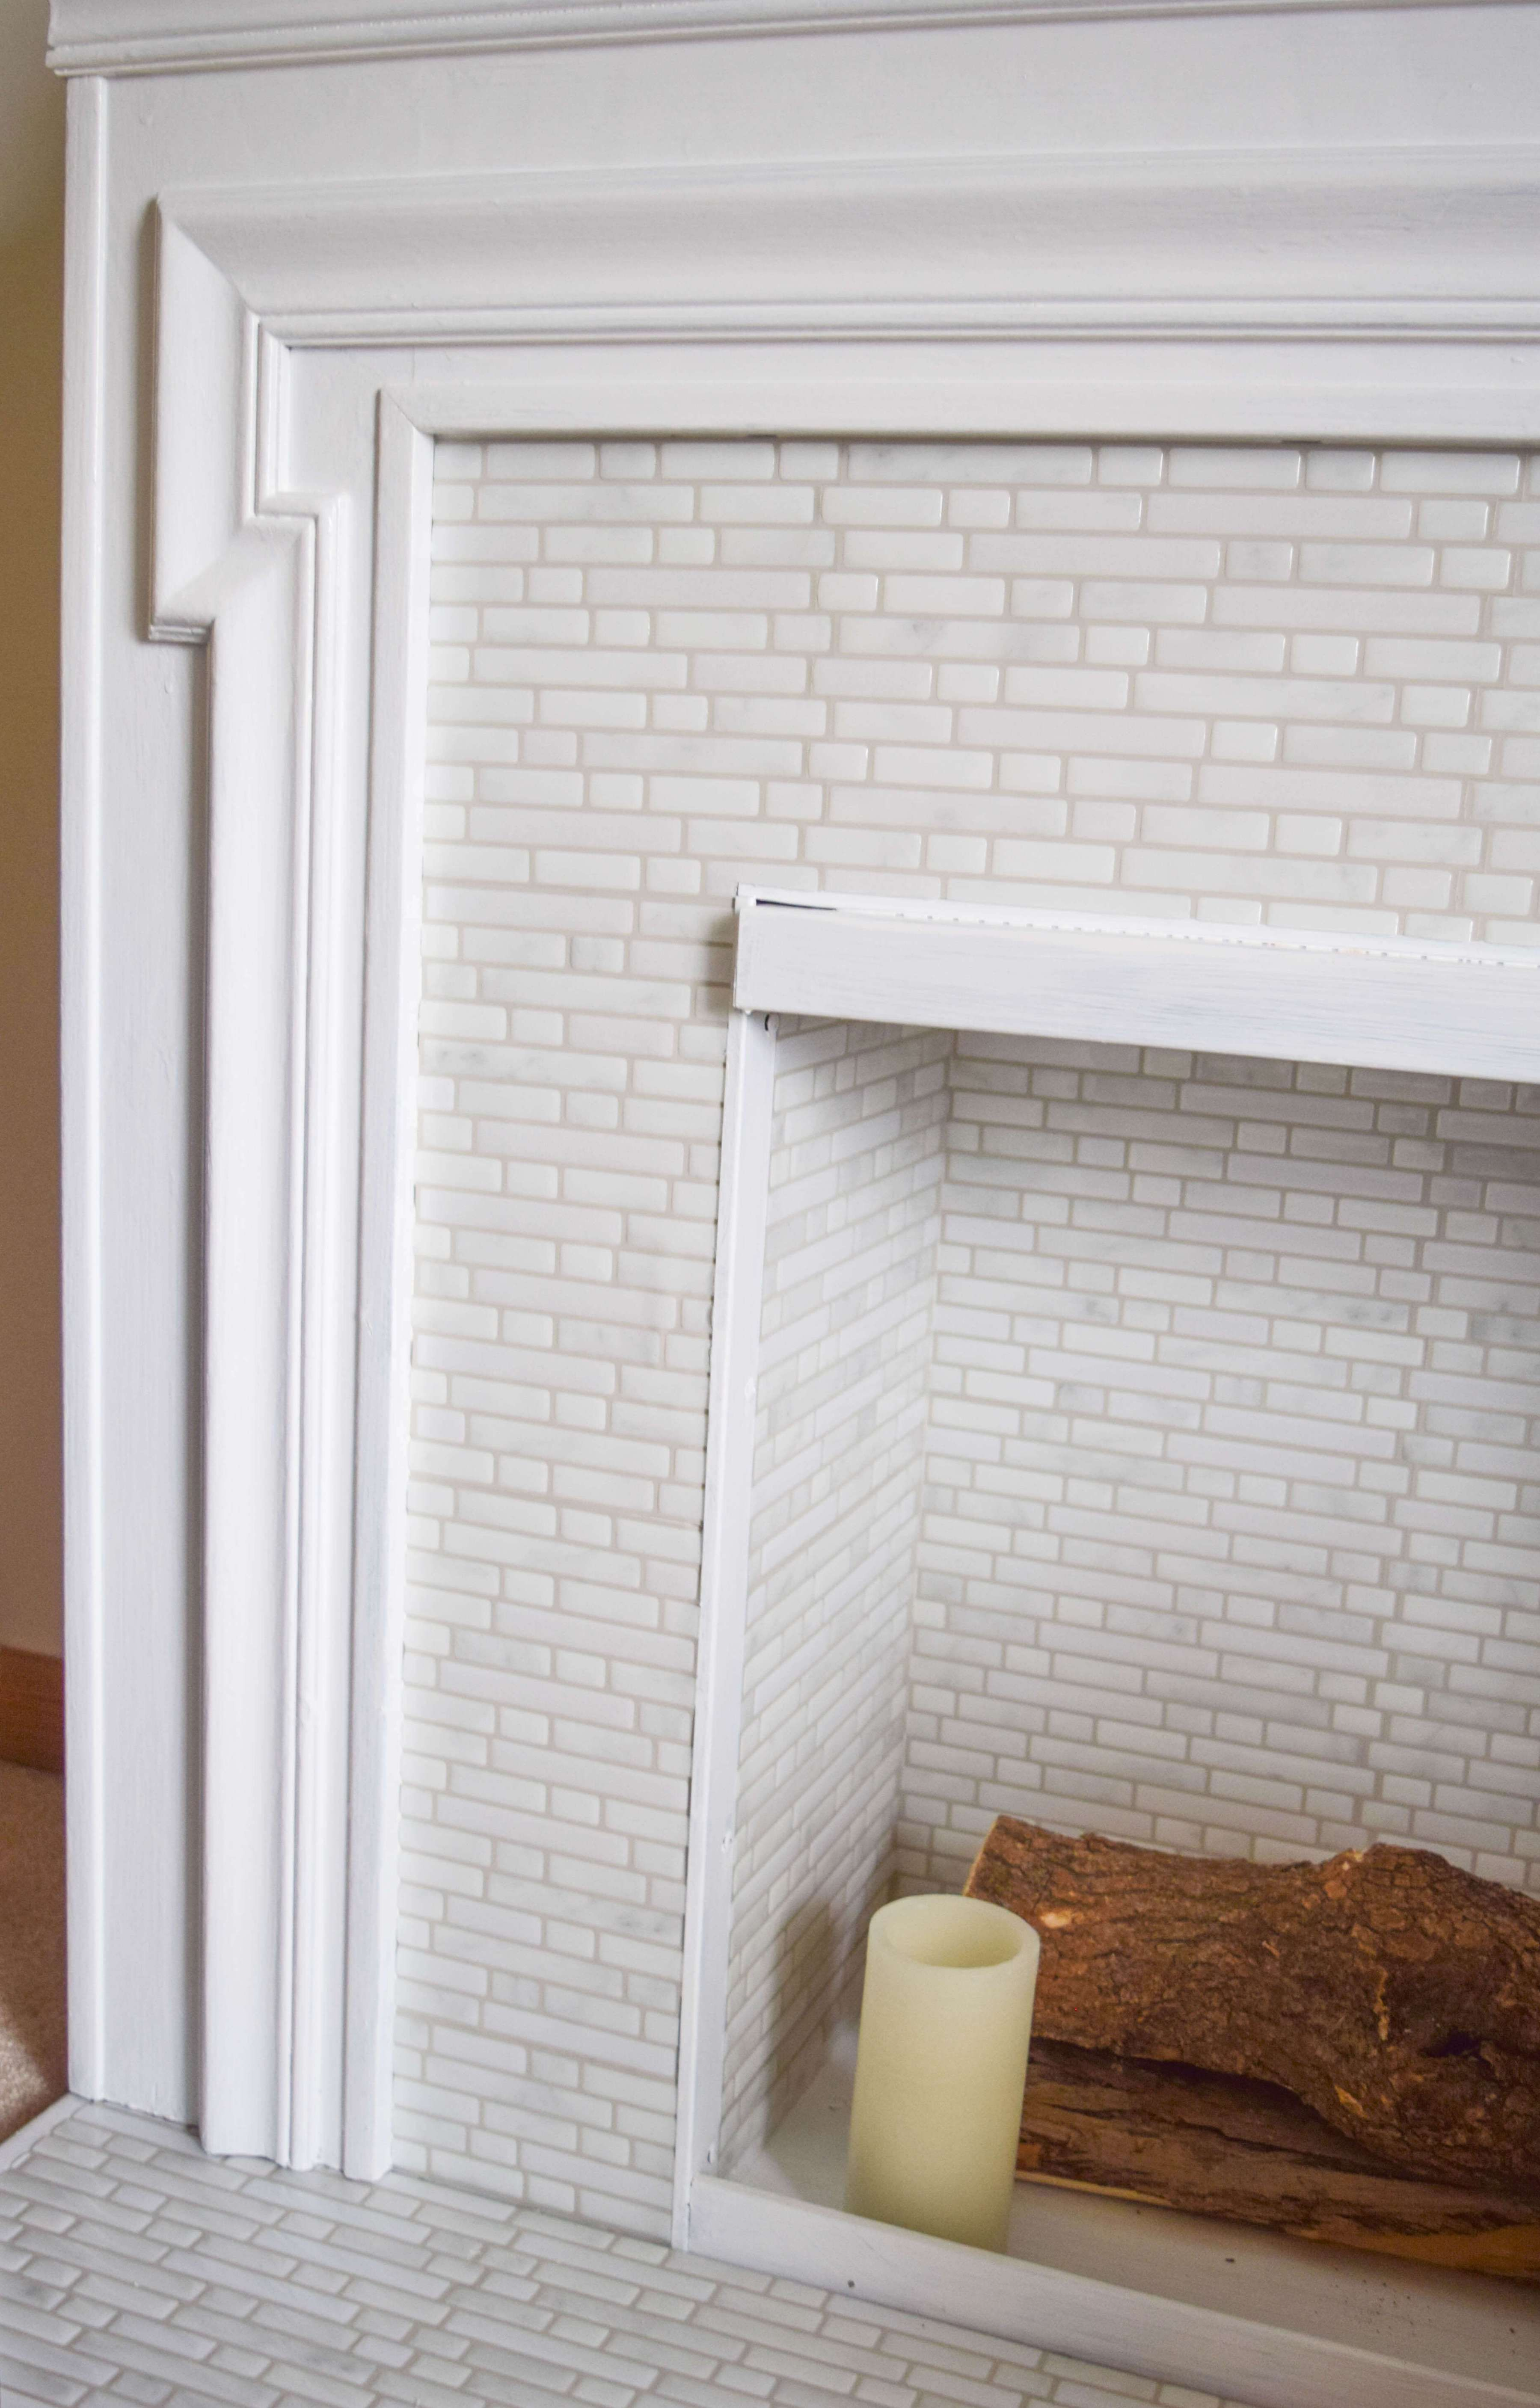 Easy Peel And Stick Tile Fireplace Surround Makeover Our House Now A Home Stick On Tiles Fireplace Tile Surround Diy Fireplace Makeover